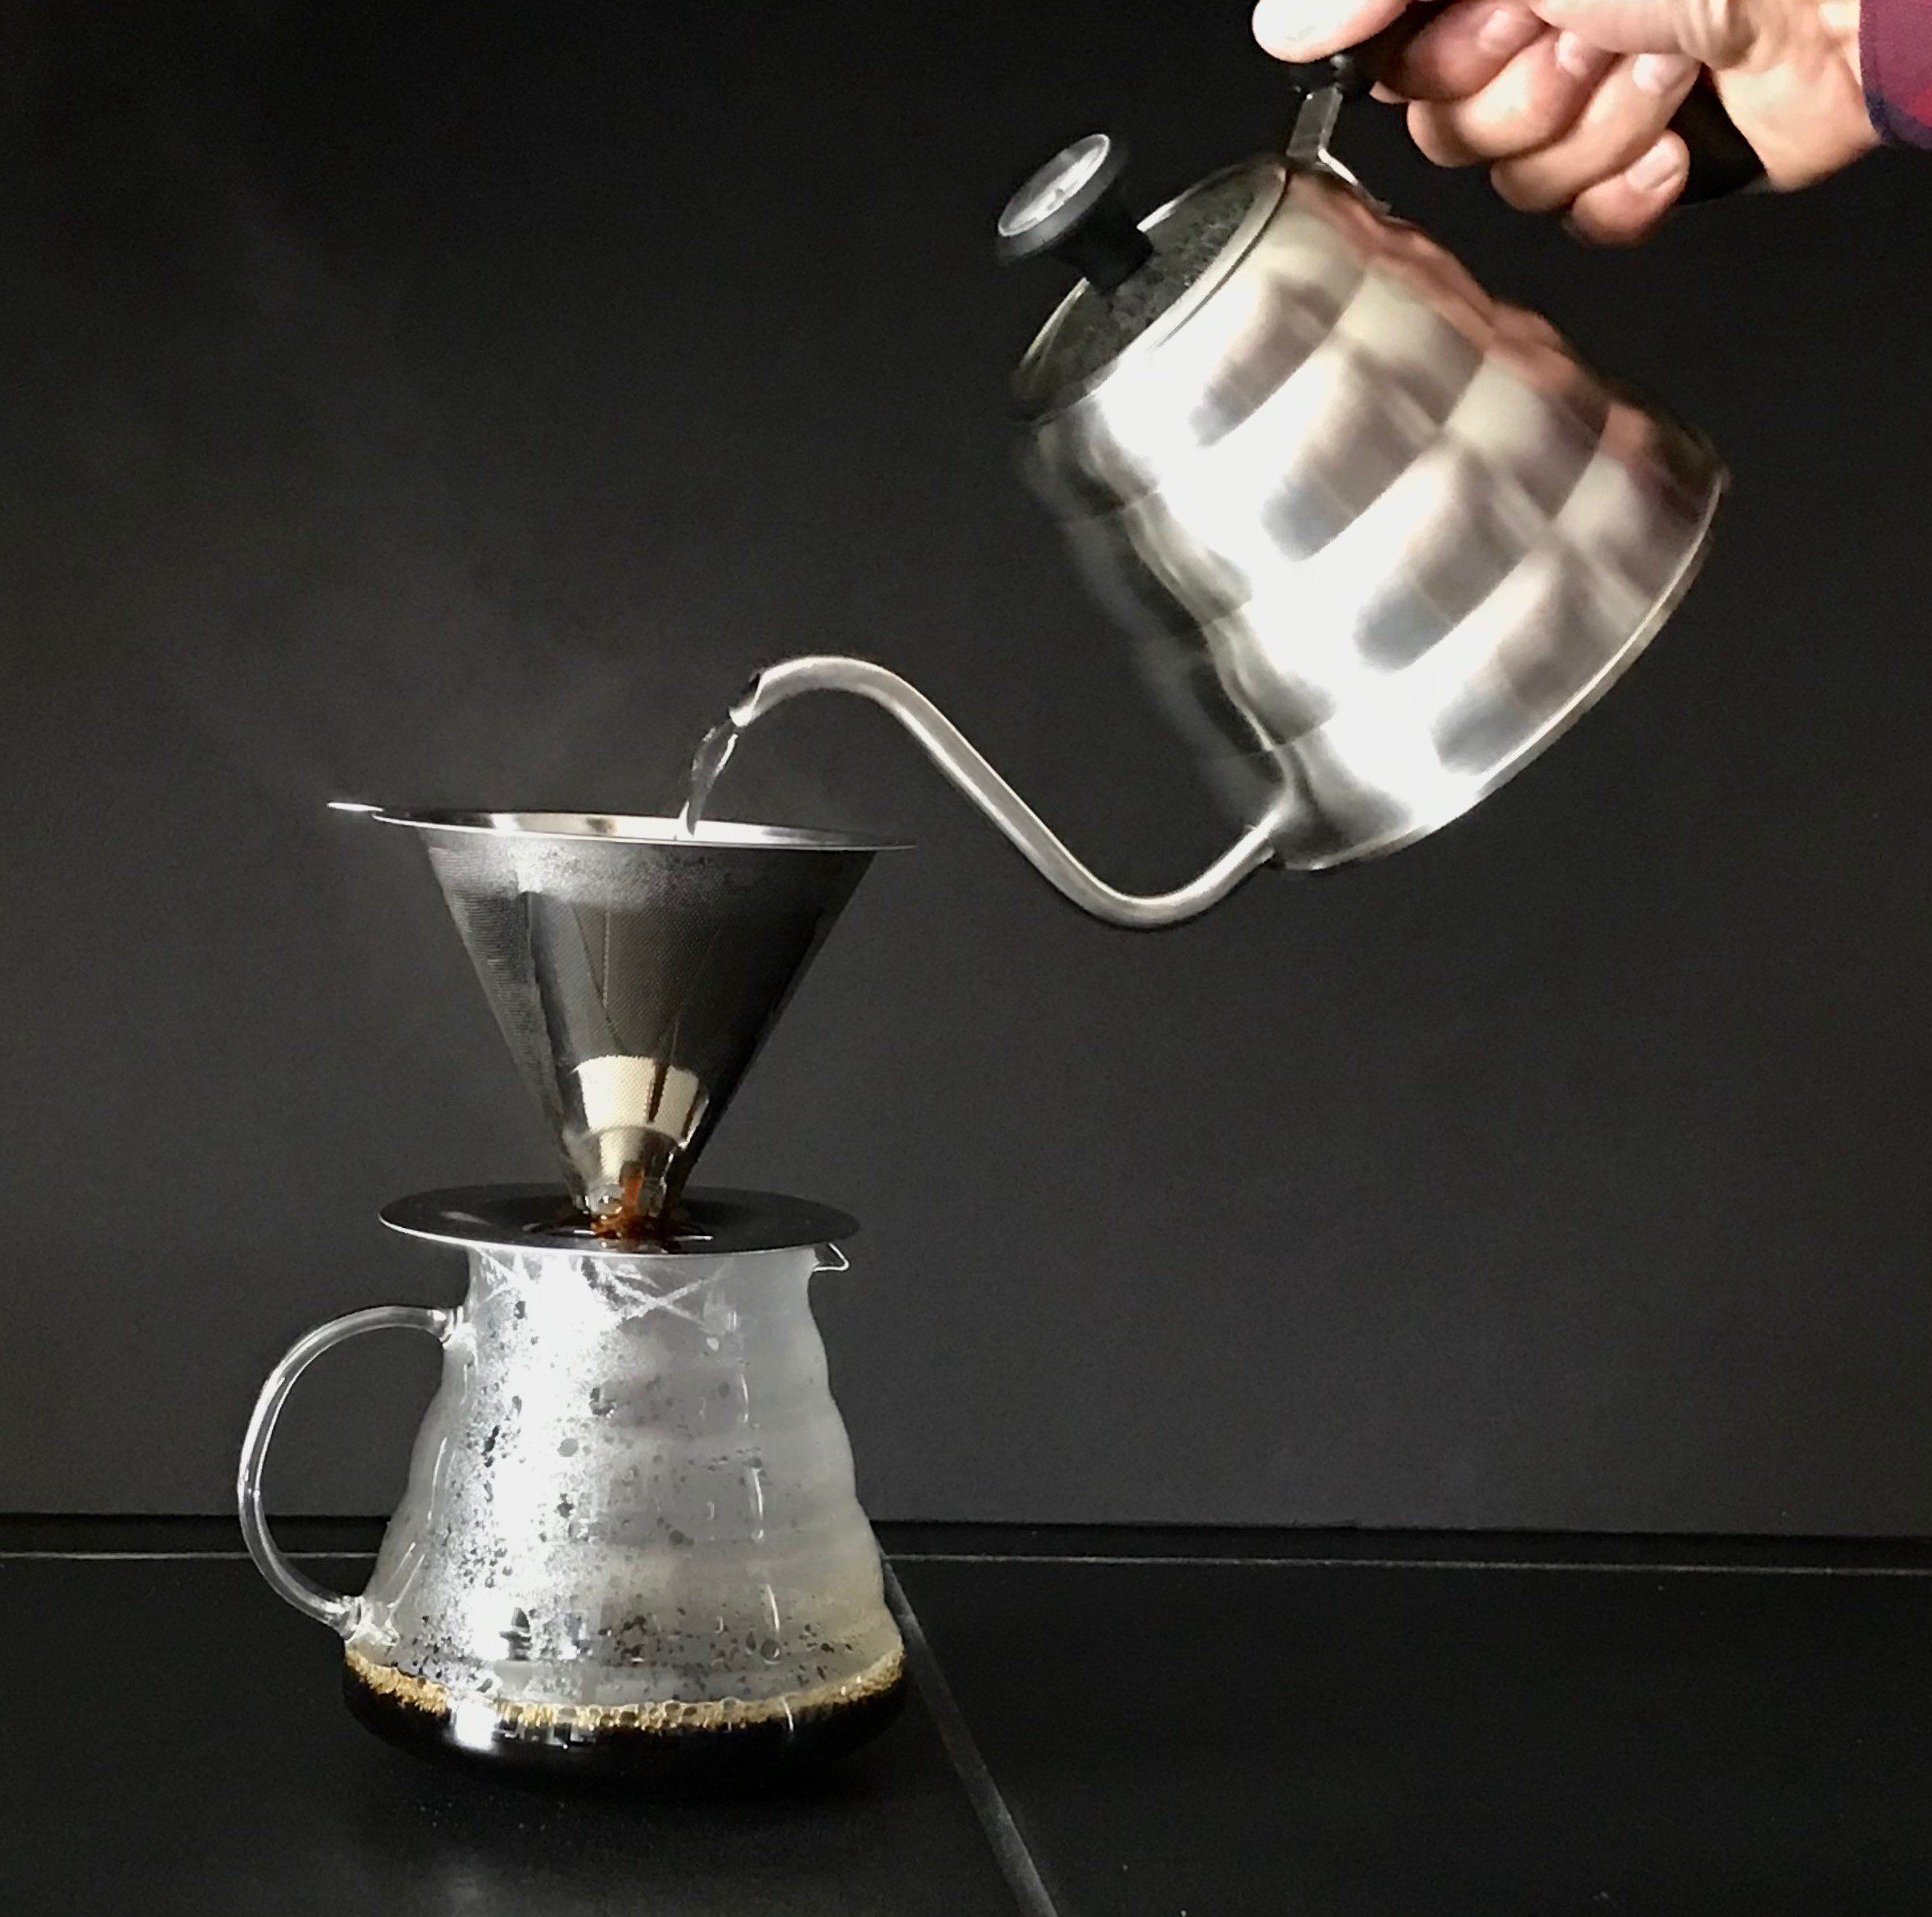 Stainless Steel Pour Over Coffee Dripper by Ol' Blue - Slow Drip Coffee Filter Cone - Reusable Single Serve Coffee Maker